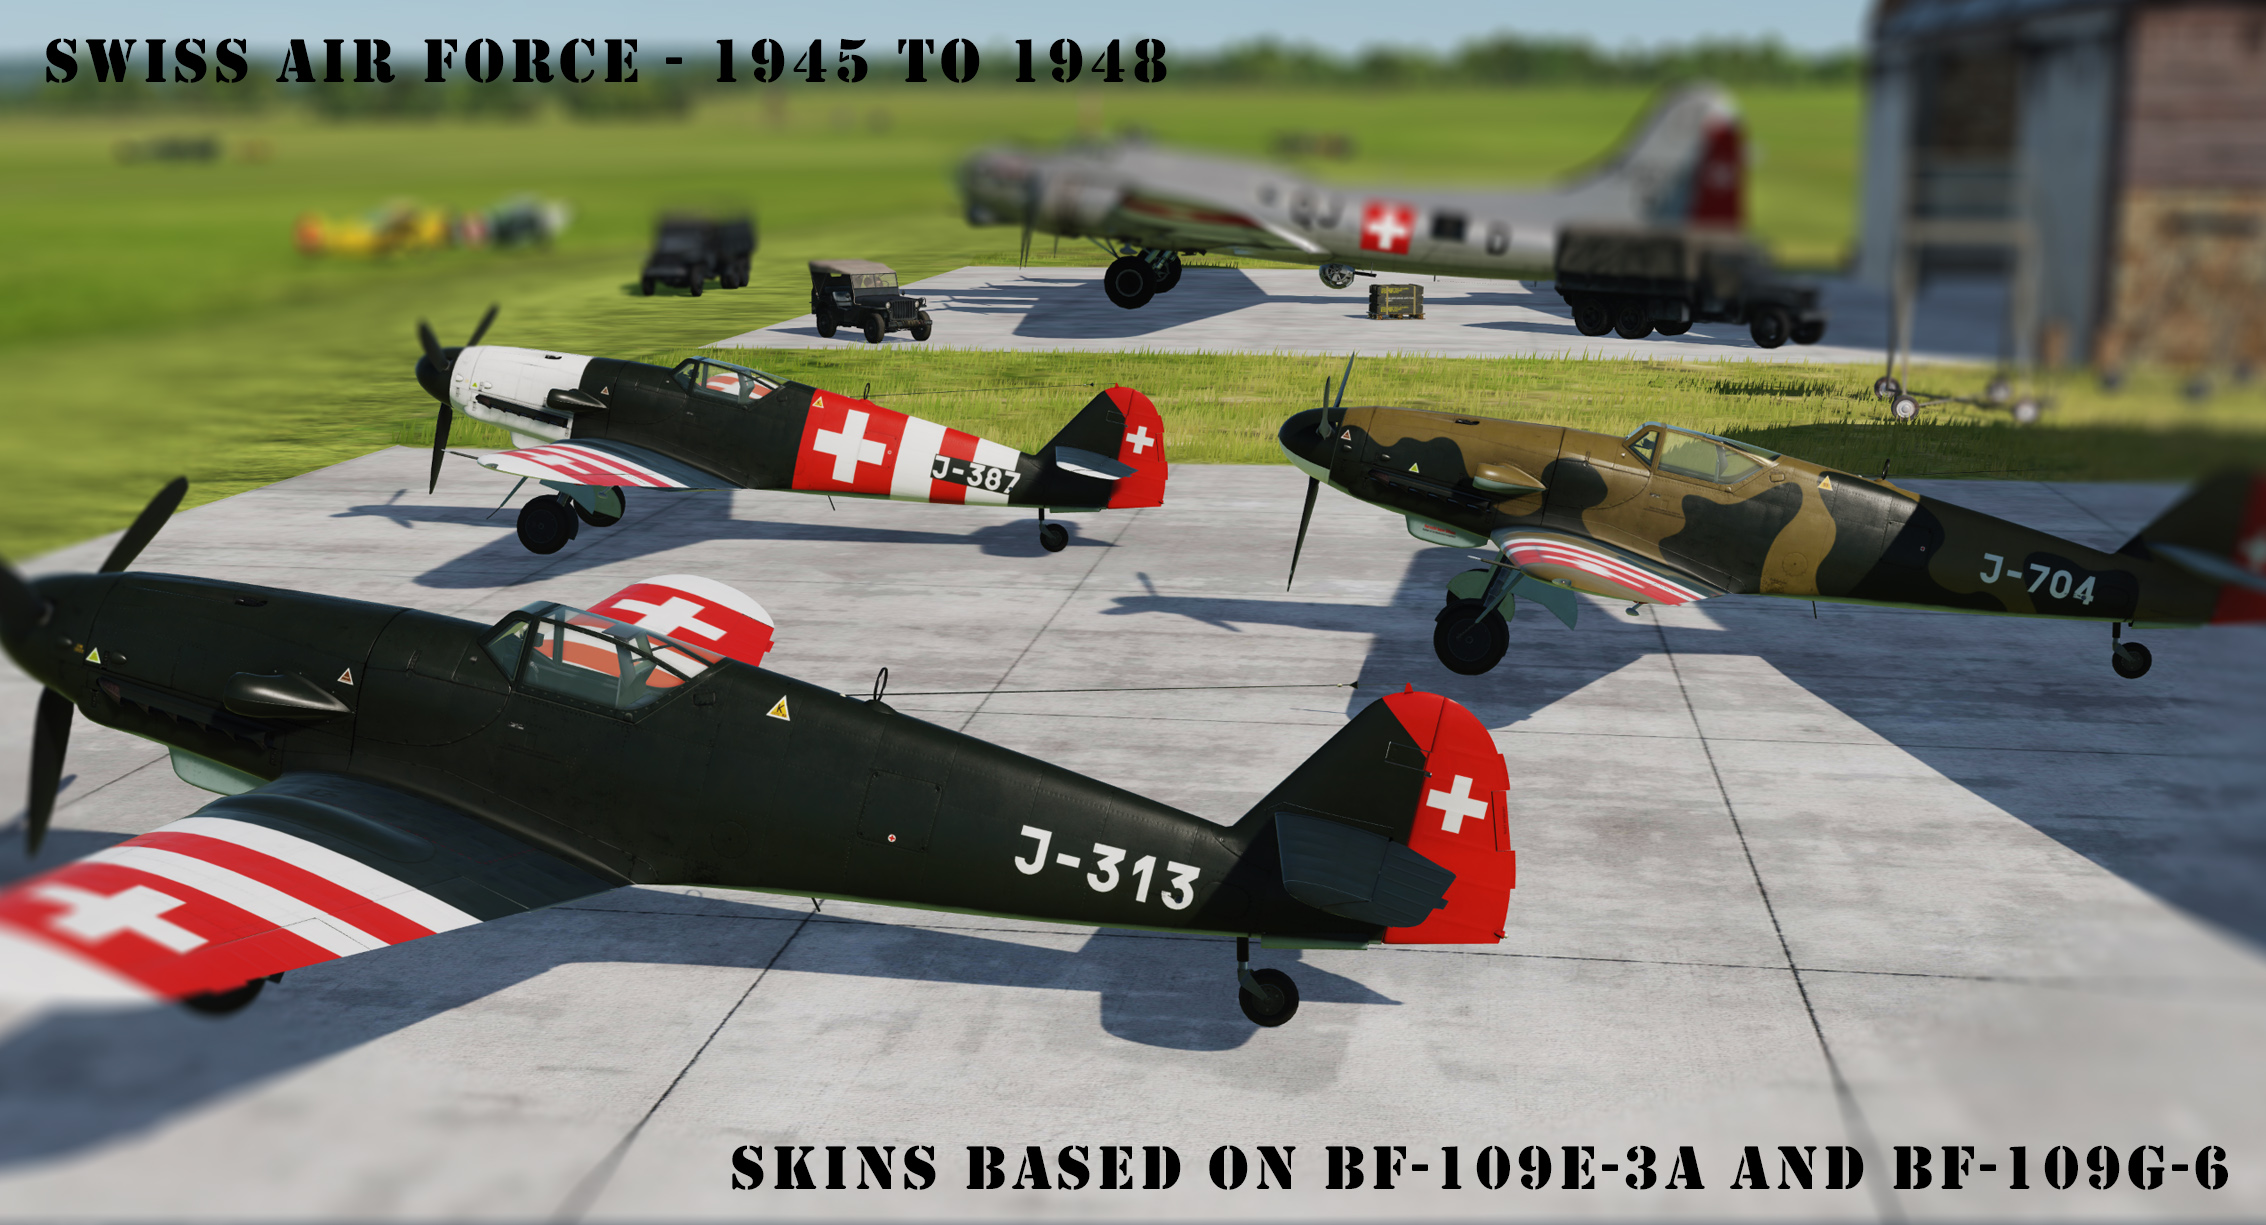 [Bf-109K-4] Swiss Air Force 1945 - 1948 v2